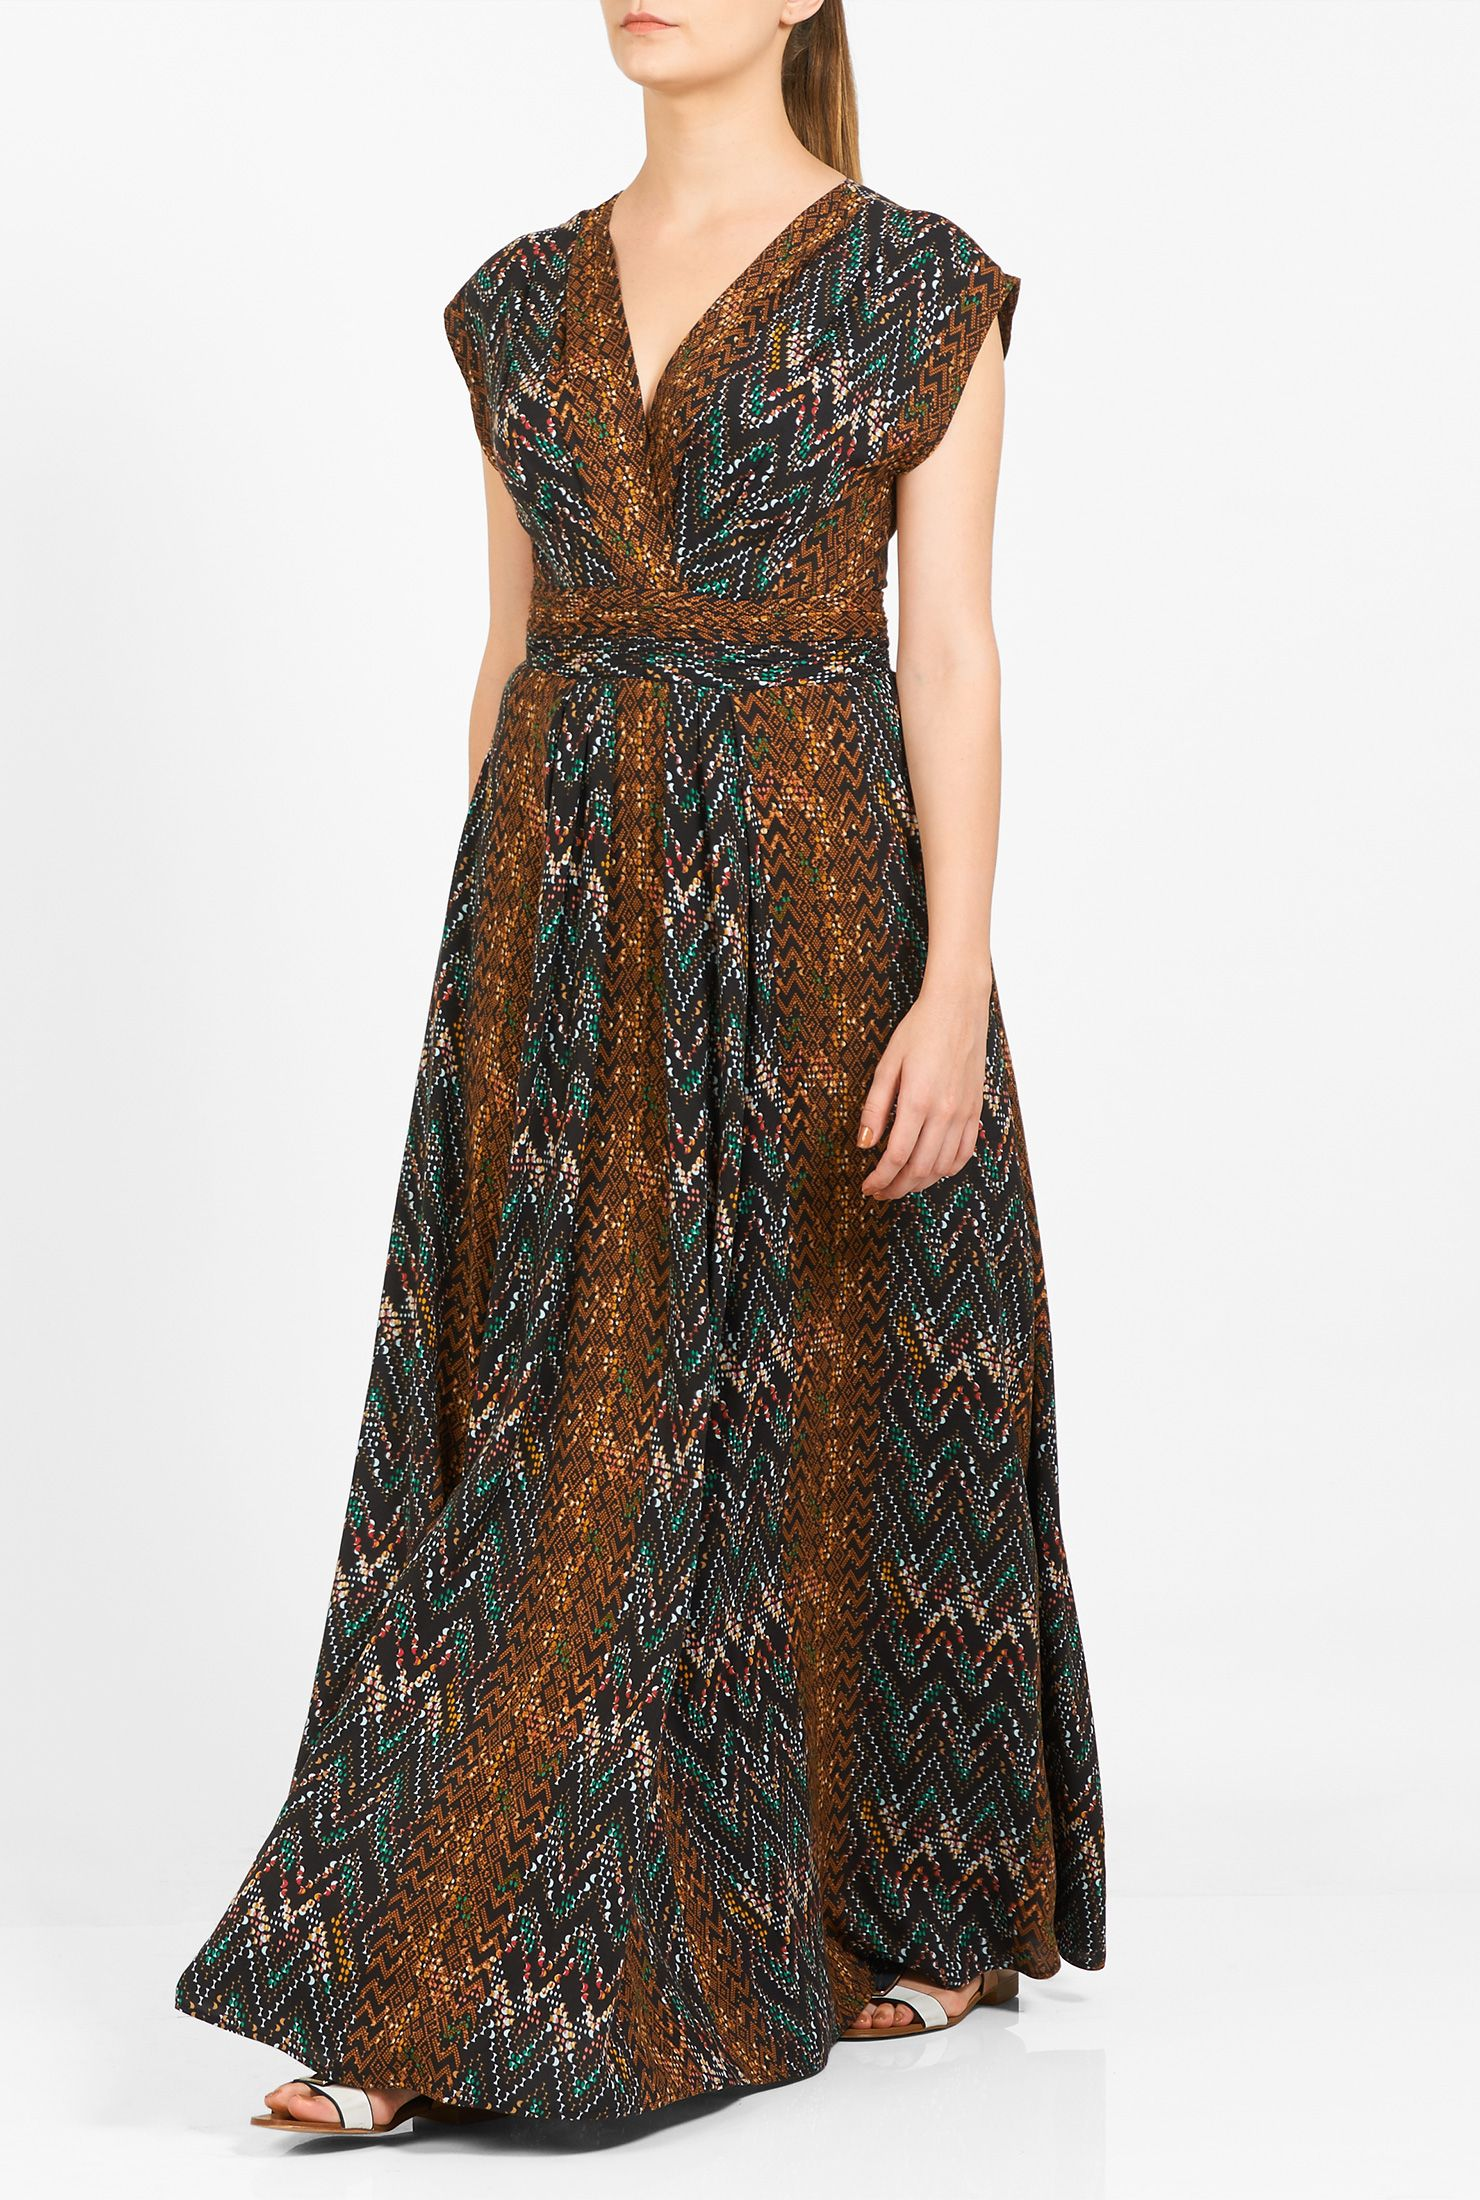 Graphic print surplice maxi dress graphic prints maxi dresses and